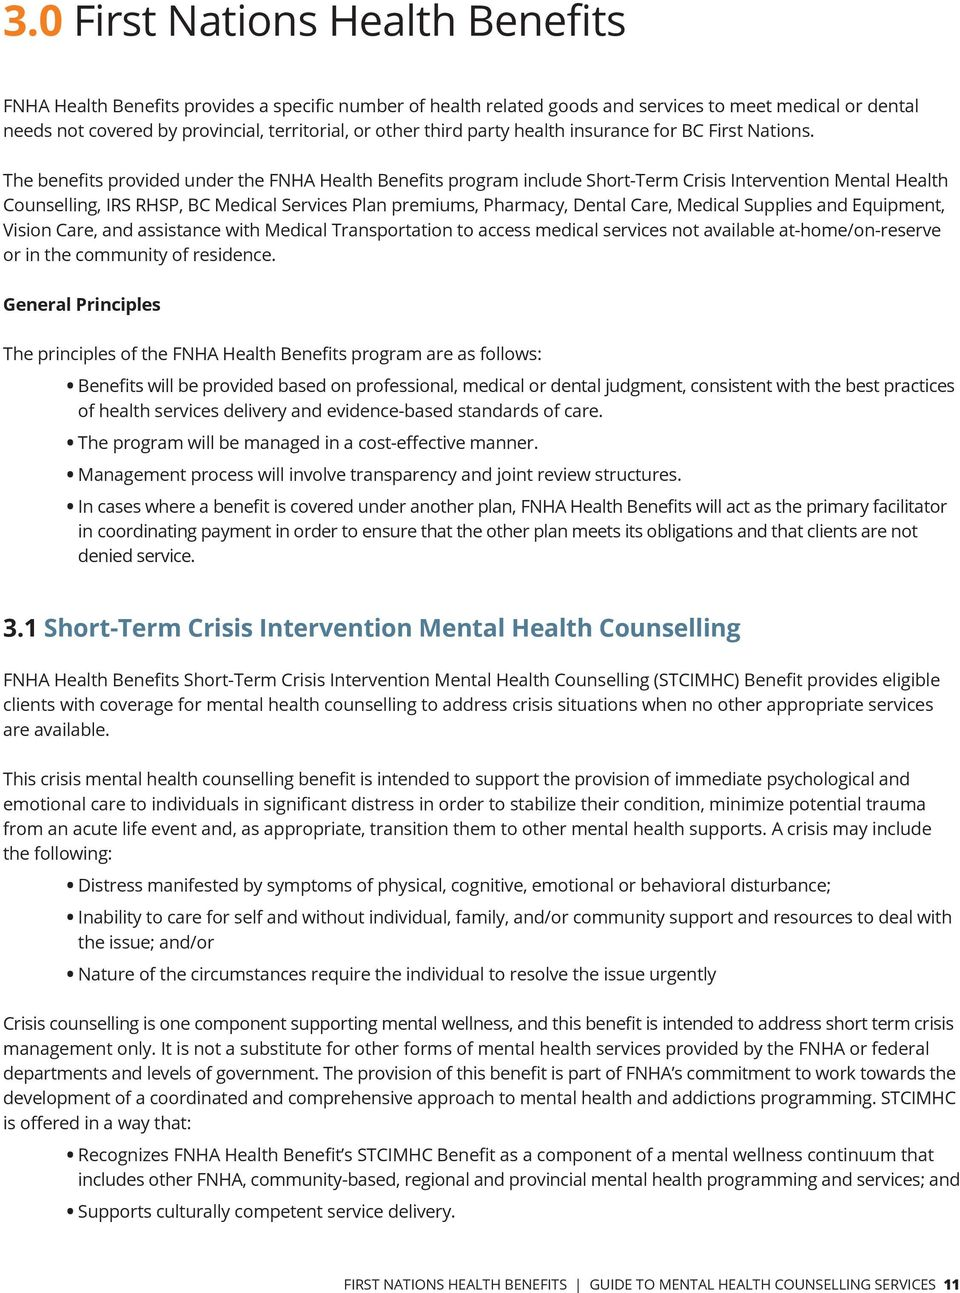 The benefits provided under the FNHA Health Benefits program include Short-Term Crisis Intervention Mental Health Counselling, IRS RHSP, BC Medical Services Plan premiums, Pharmacy, Dental Care,